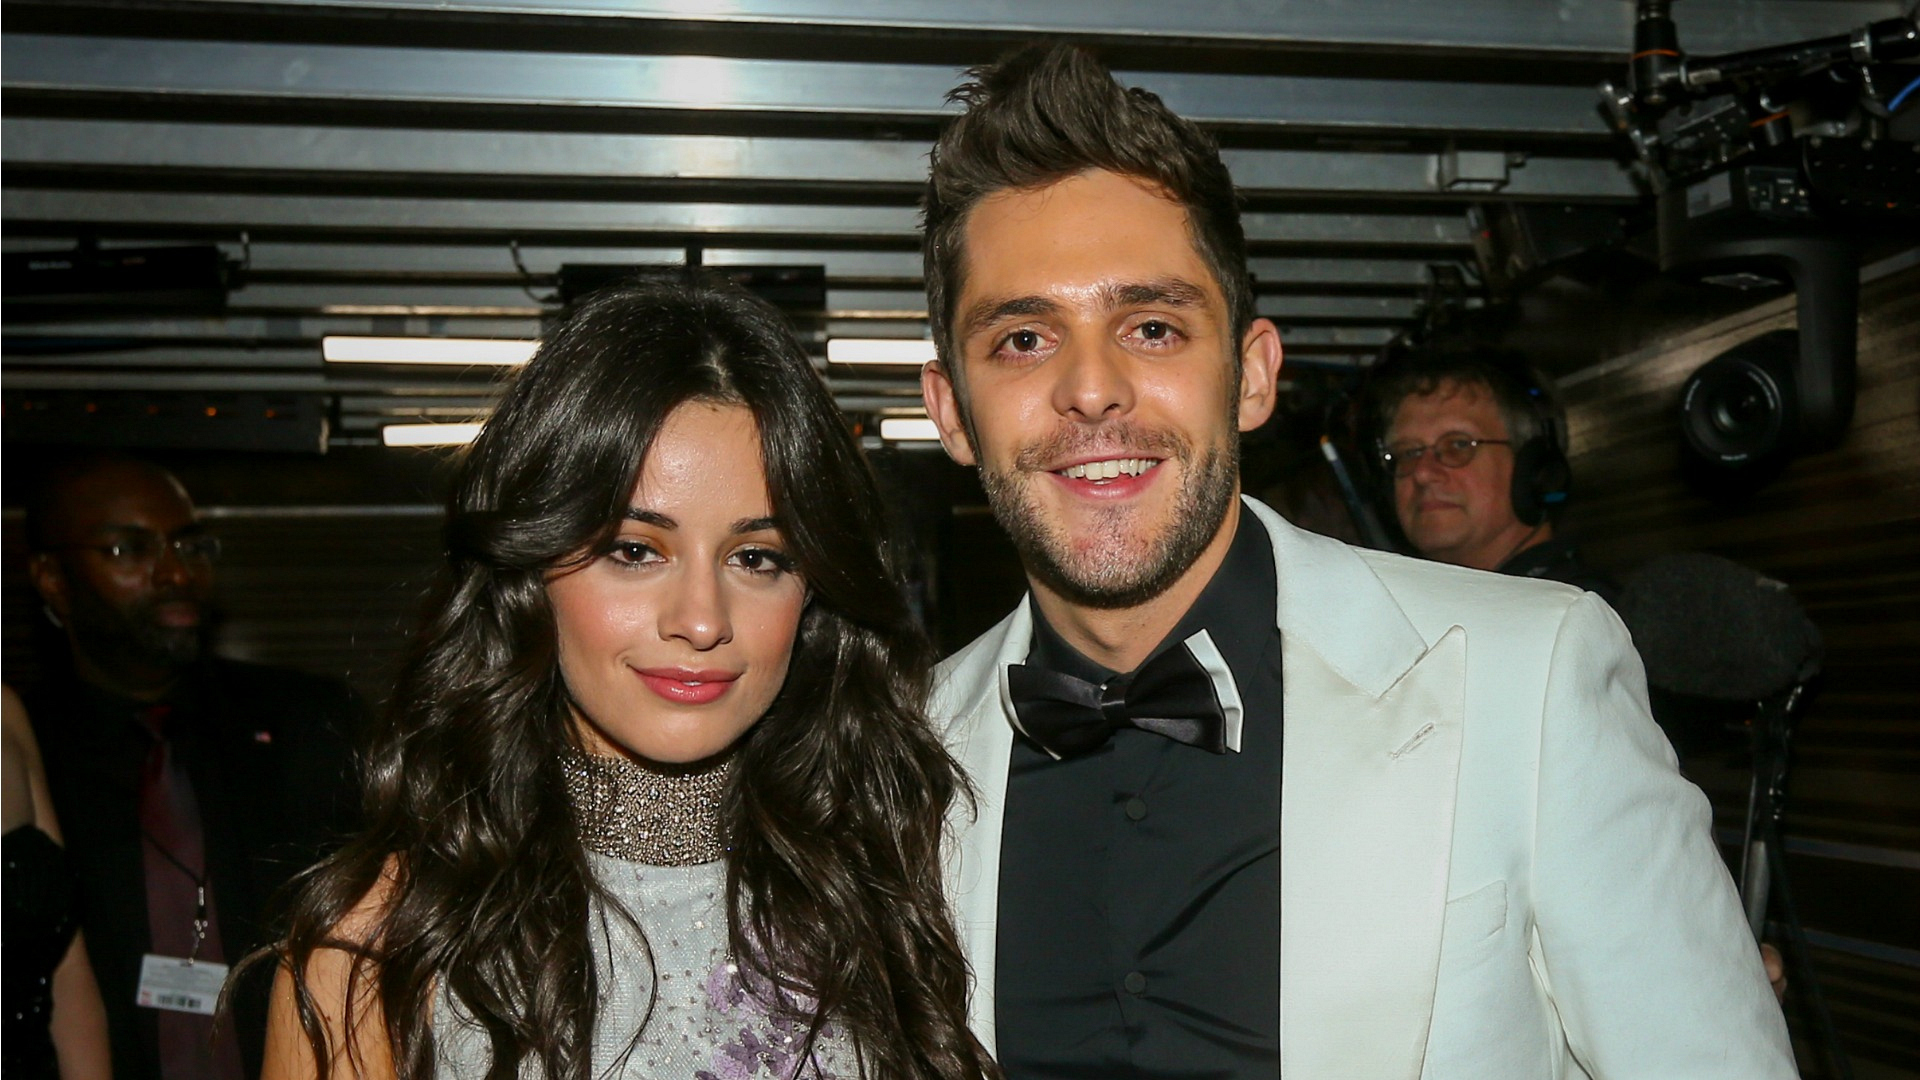 Singer Camila Cabello poses with country star Thomas Rhett after presenting the GRAMMY Award for Best Country Solo Performance.